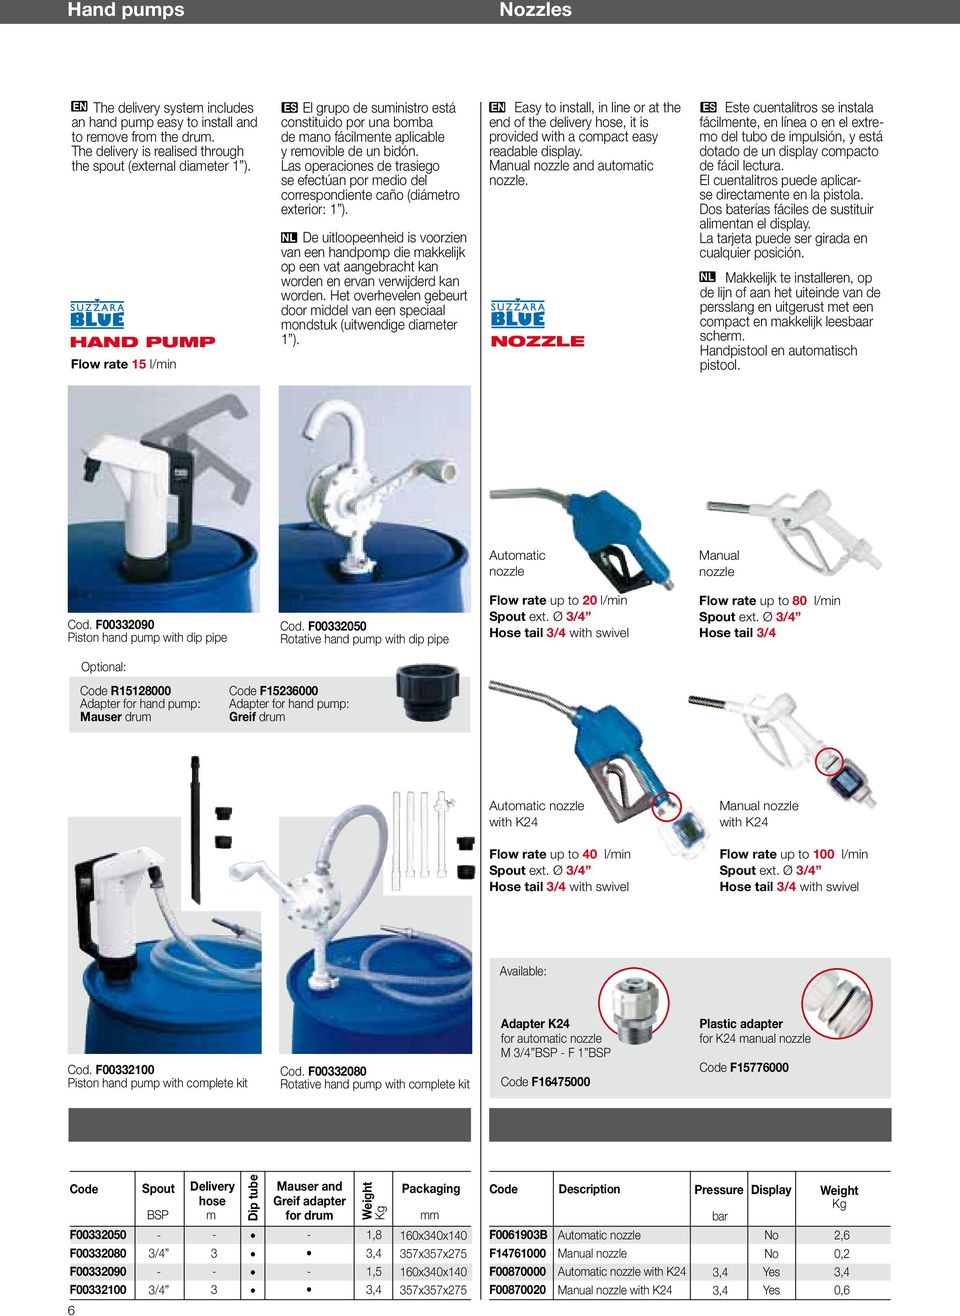 Las operaciones de trasiego se efectúan por medio del correspondiente caño (diámetro exterior: 1 ). end of the delivery hose, it is provided with a compact easy readable display.